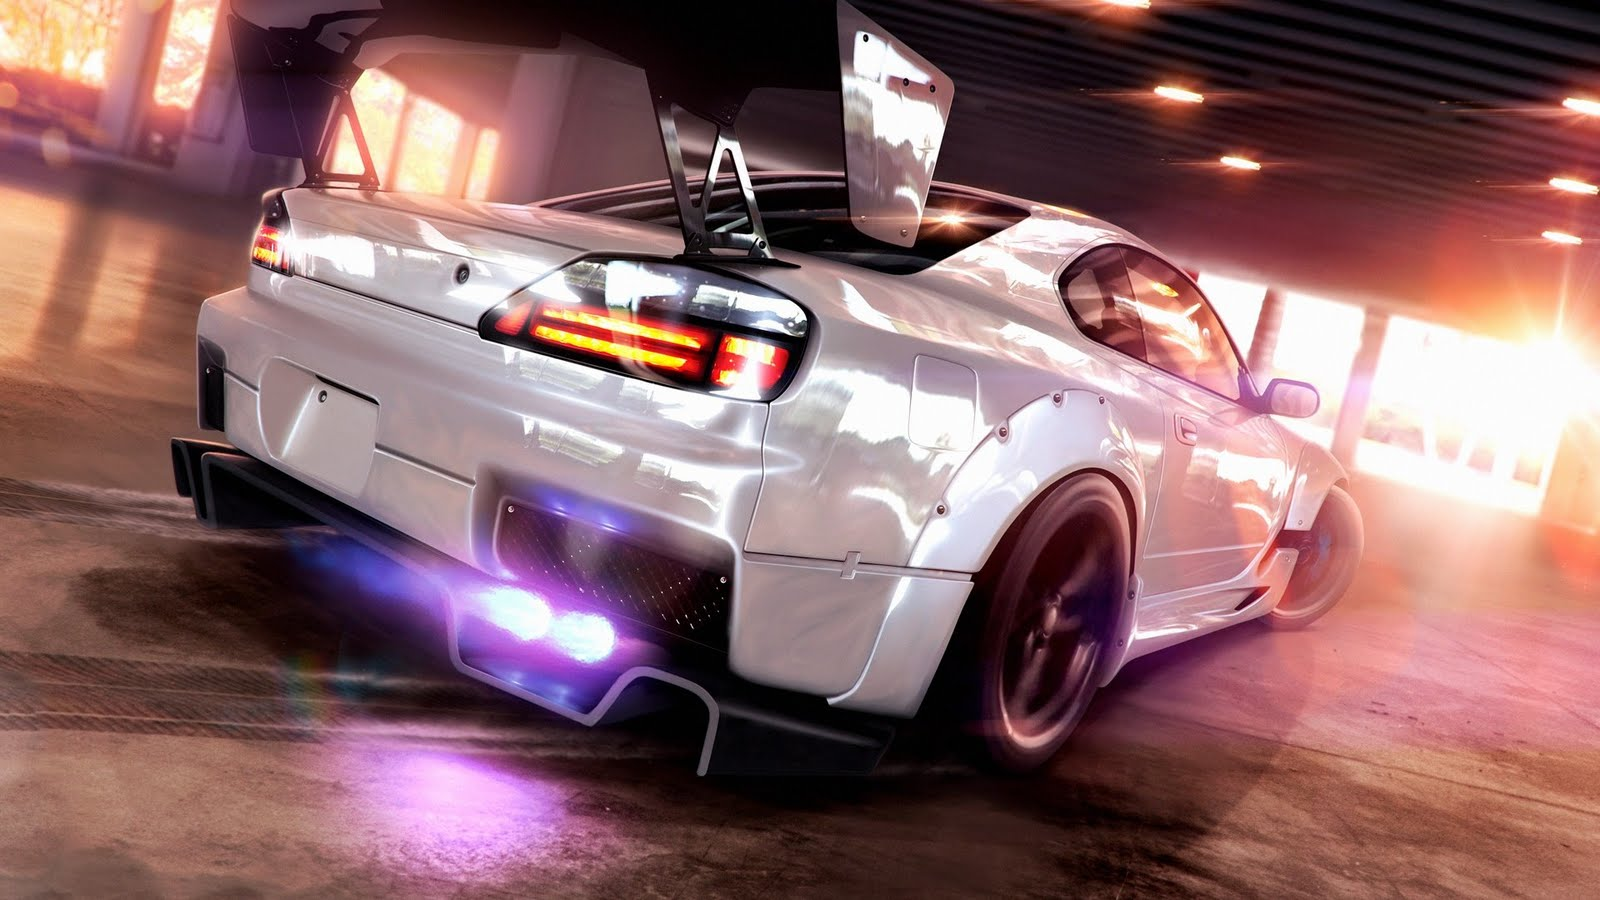 http://3.bp.blogspot.com/-I3zfnmNrMiw/TgomUf9Zg5I/AAAAAAAAArE/nZb-3UnGMLo/s1600/Need-For-Speed-NFS-HD-Wallpaper.jpg